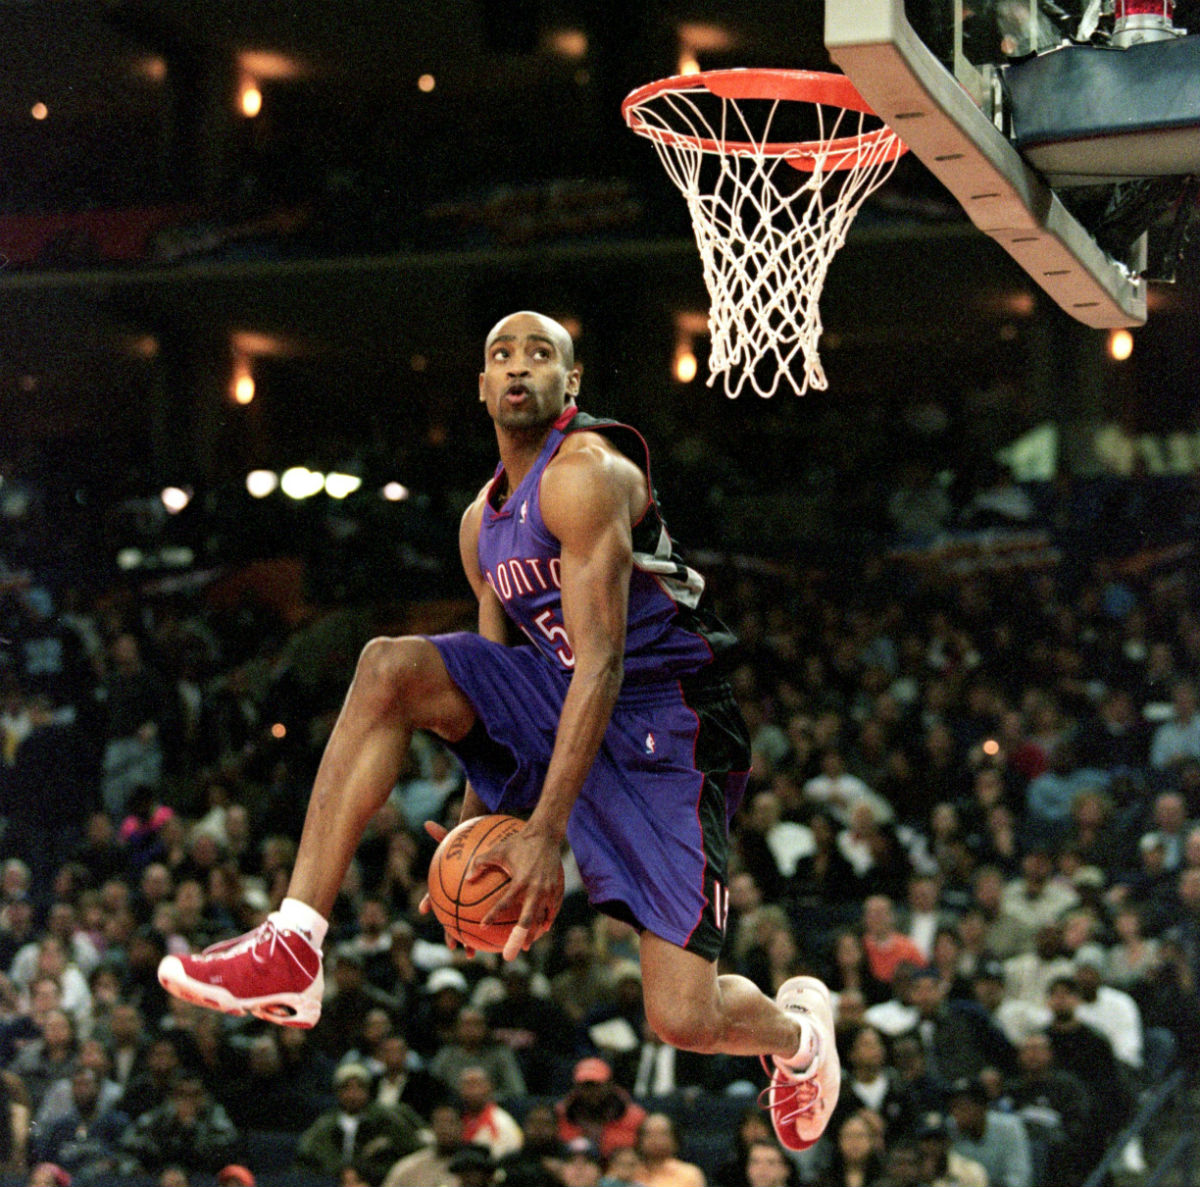 Vince Carter Wins the 2000 Slam Dunk Contest in the AND1 Tai Chi